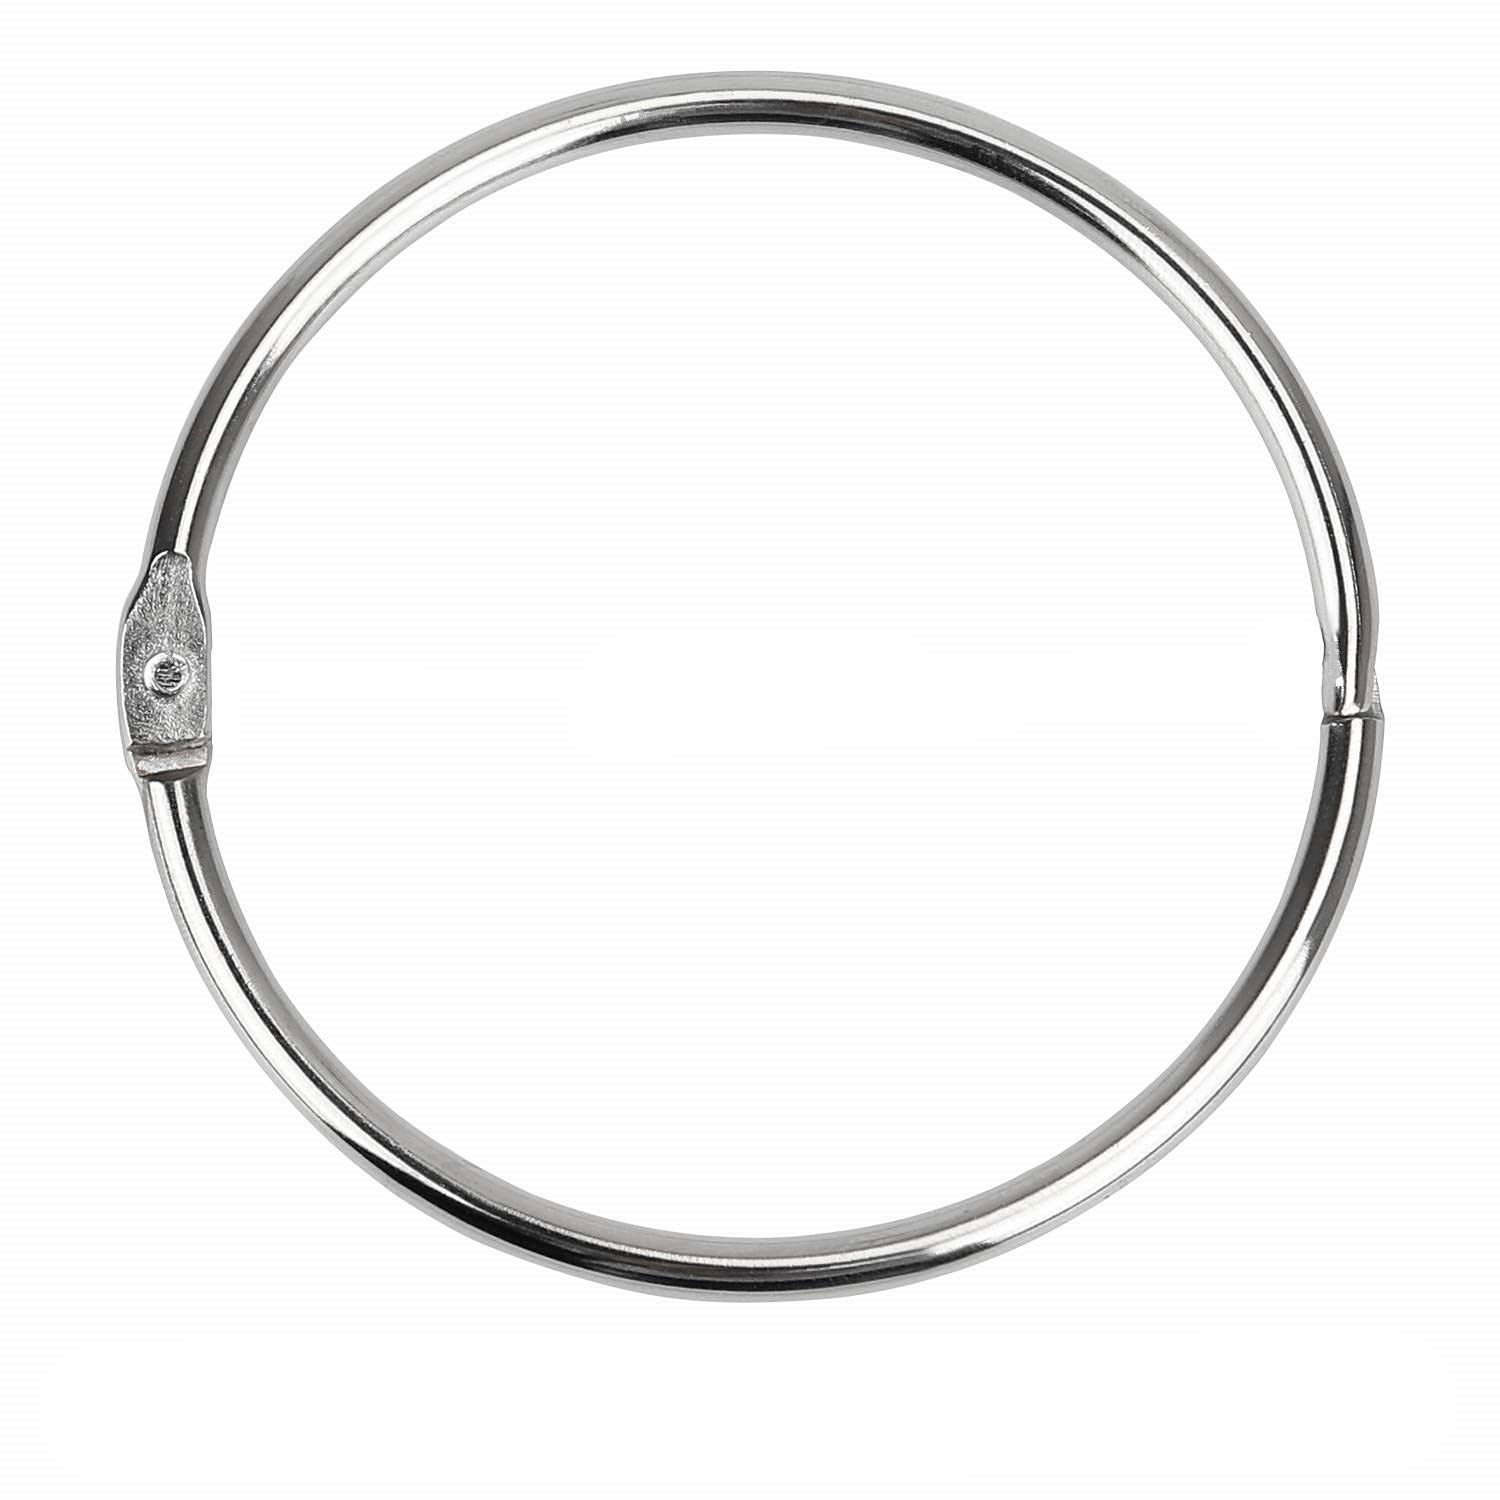 Binder Rings Loose Leaf Book Ring Large 2-3/4 Inch Diameter Nickel Plated (Silver )